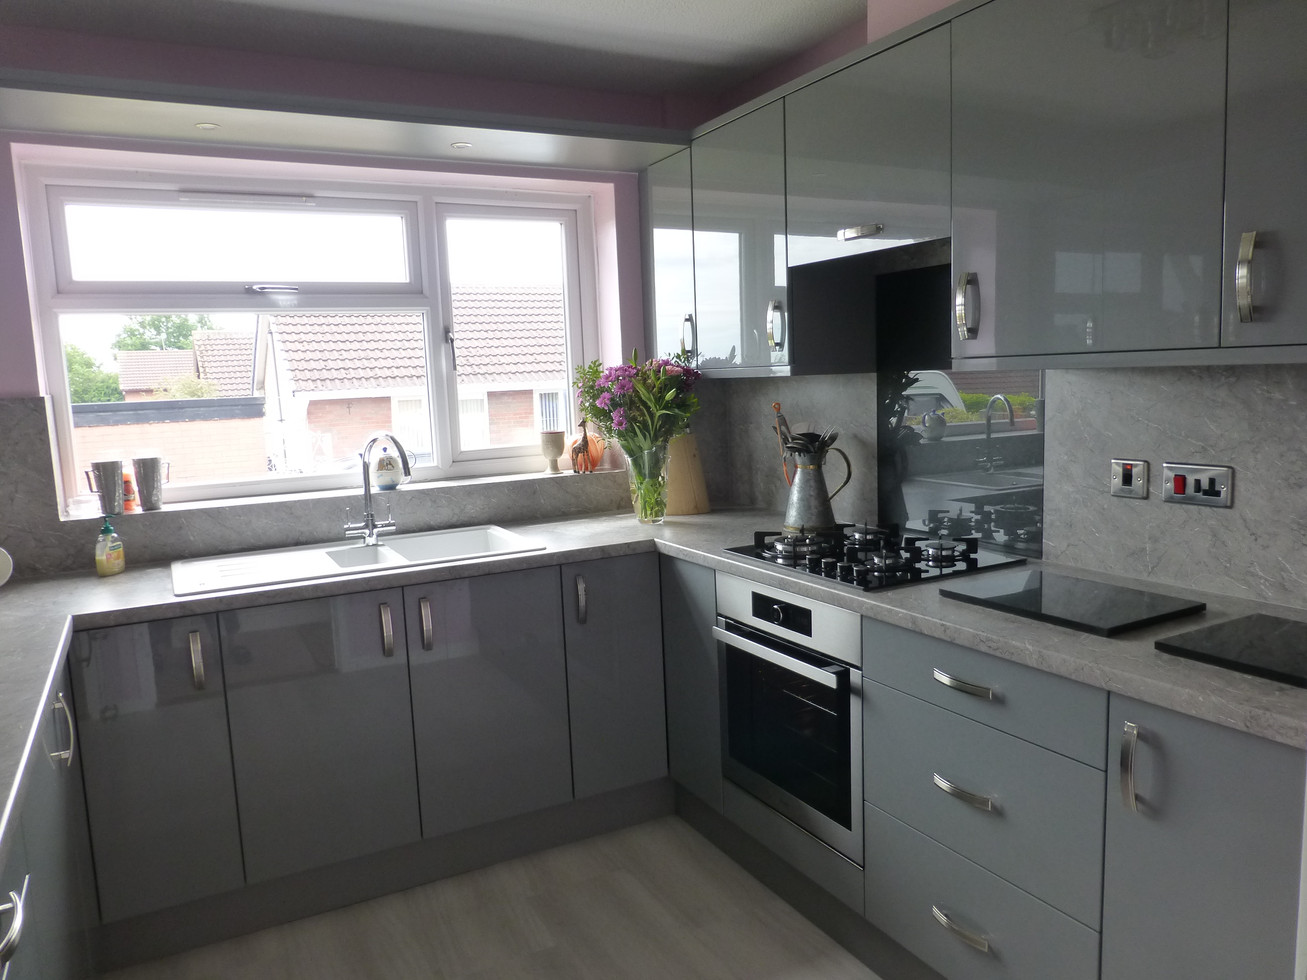 GLOSS DUST GREY KITCHEN SUPPLIED & FITTED 2019